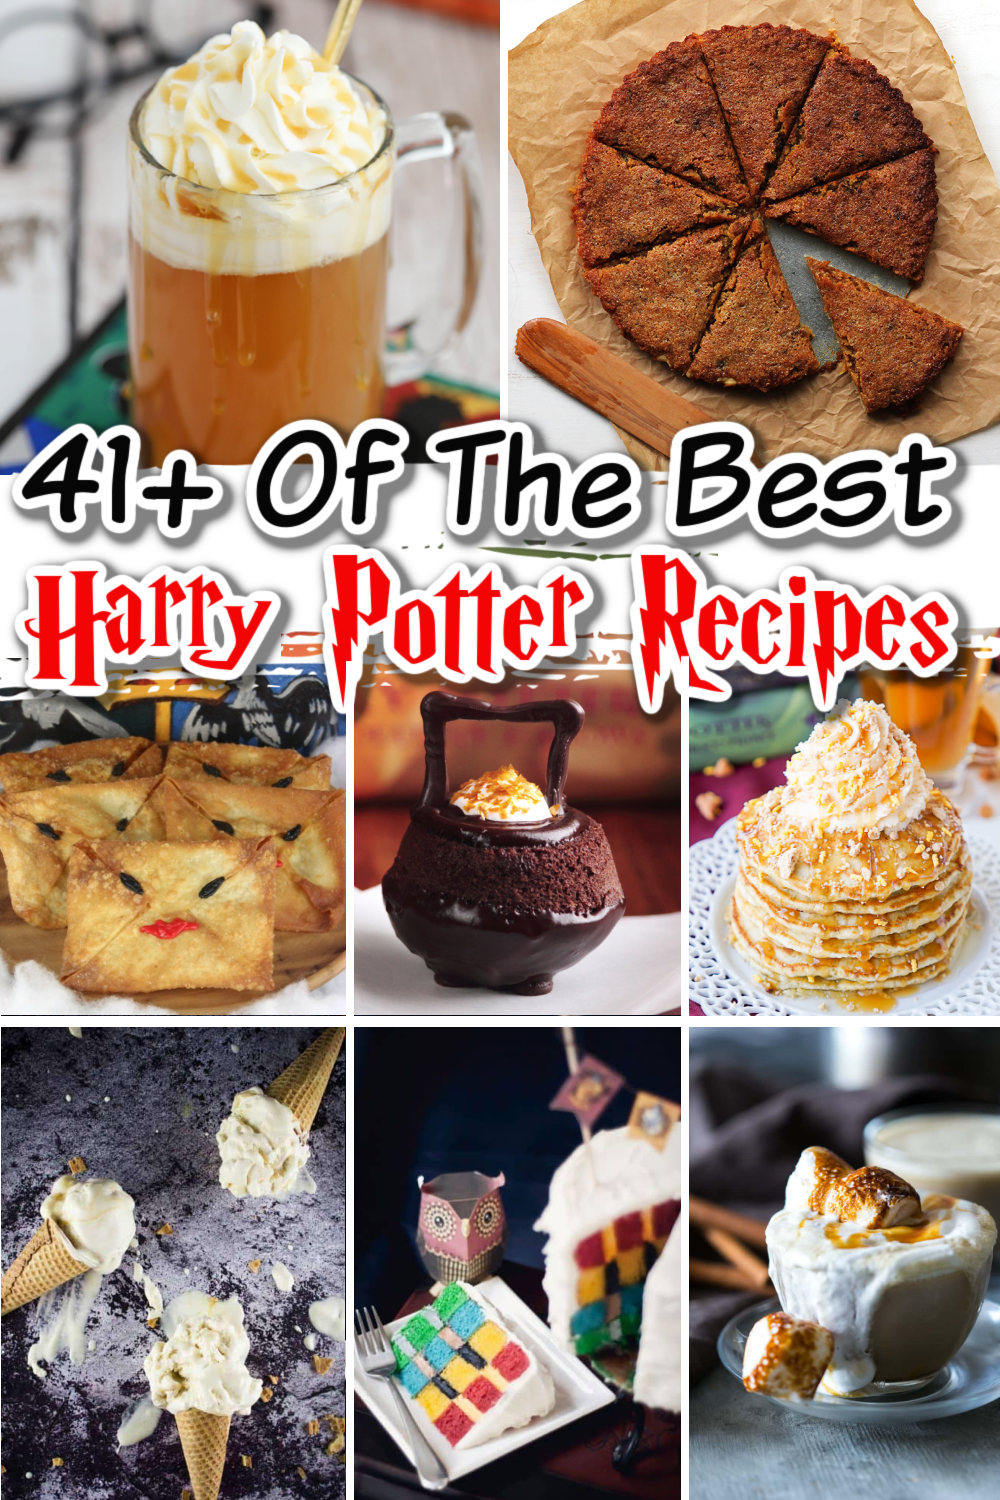 41 Magical Harry Potter Recipes In 2021 Harry Potter Food Harry Potter Parties Food Harry Potter Treats